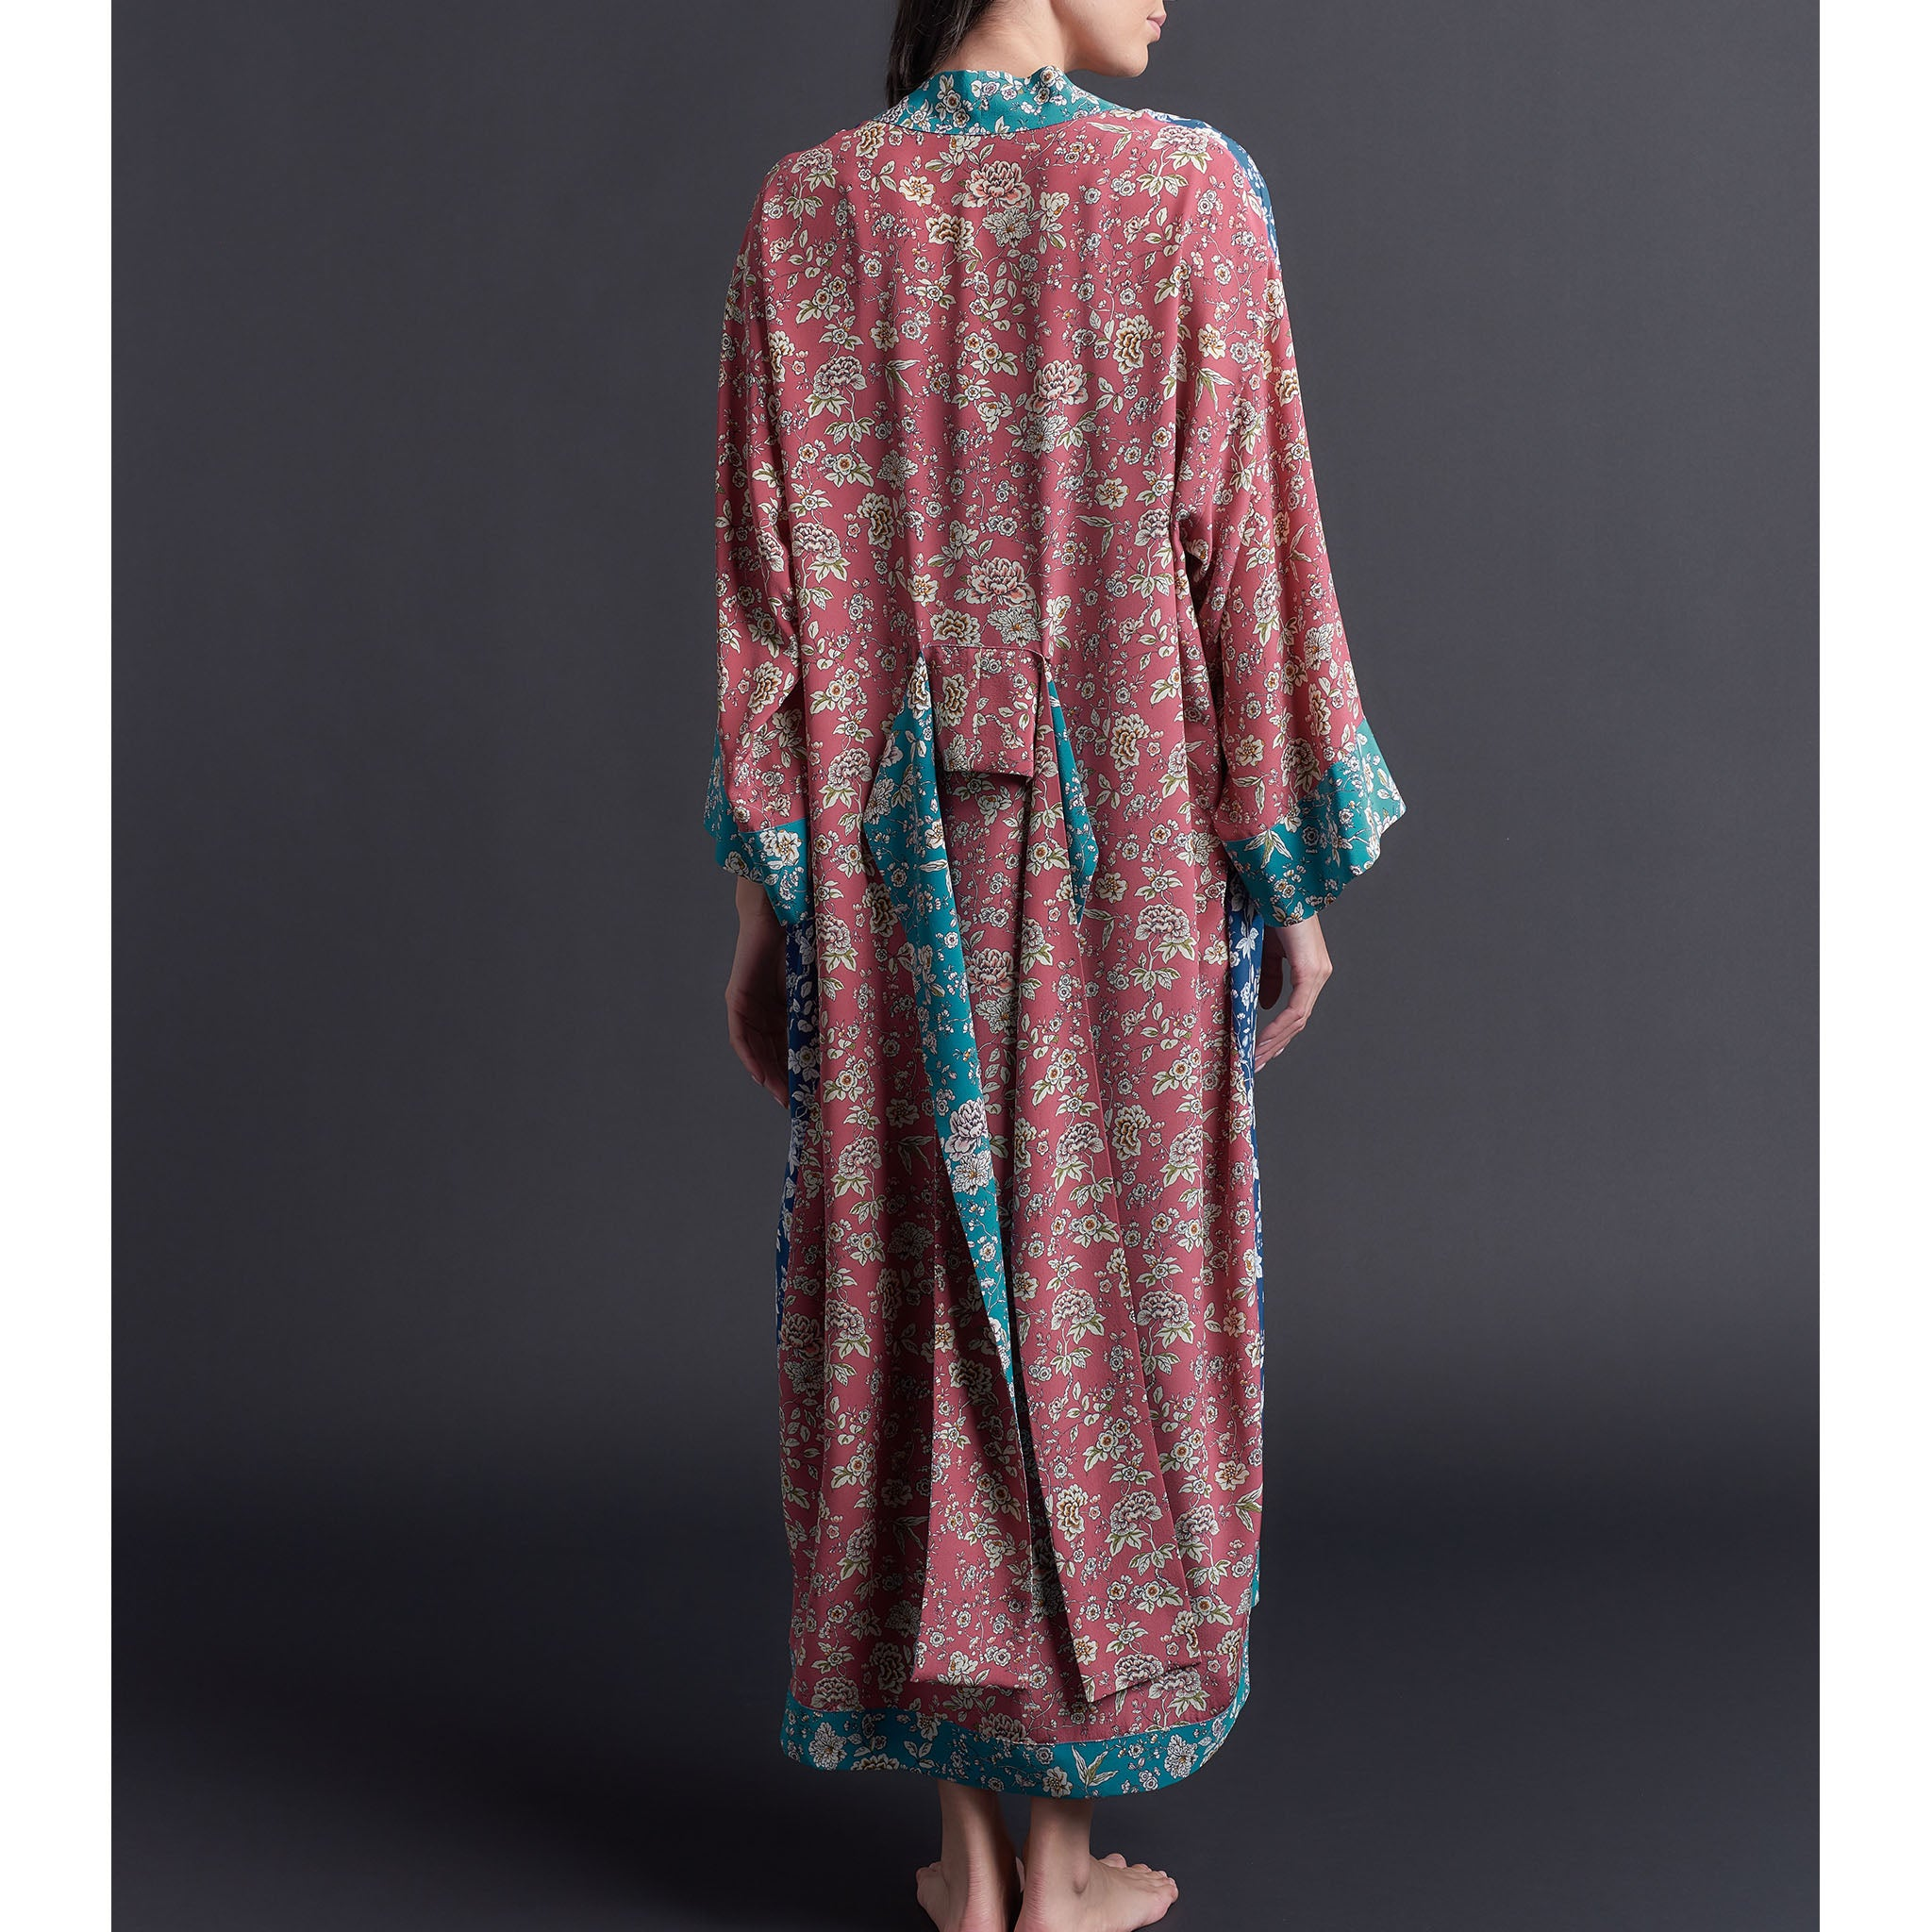 Asteria Kimono Robe in Liberty of London Print Block Ceremony Blues Silk Crepe De Chine